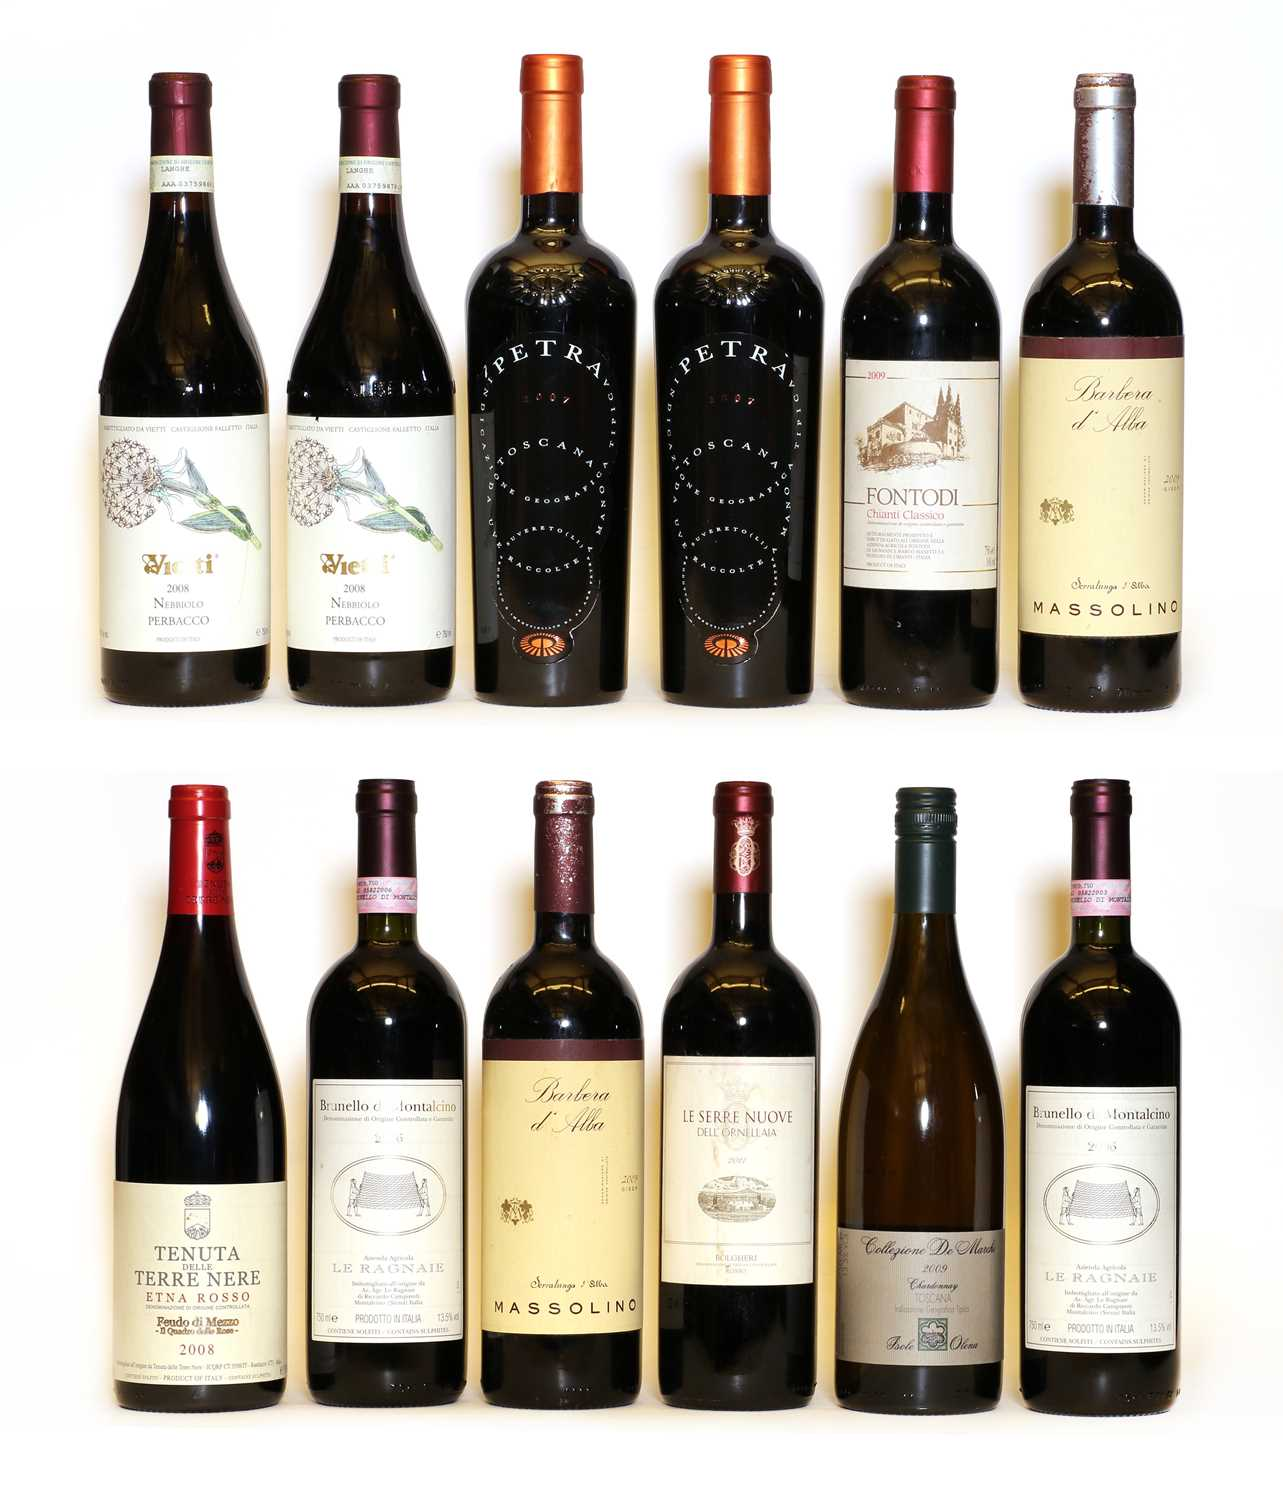 Assorted Italian wine: Barolo, Massolino, 2009, two bottles and ten various others